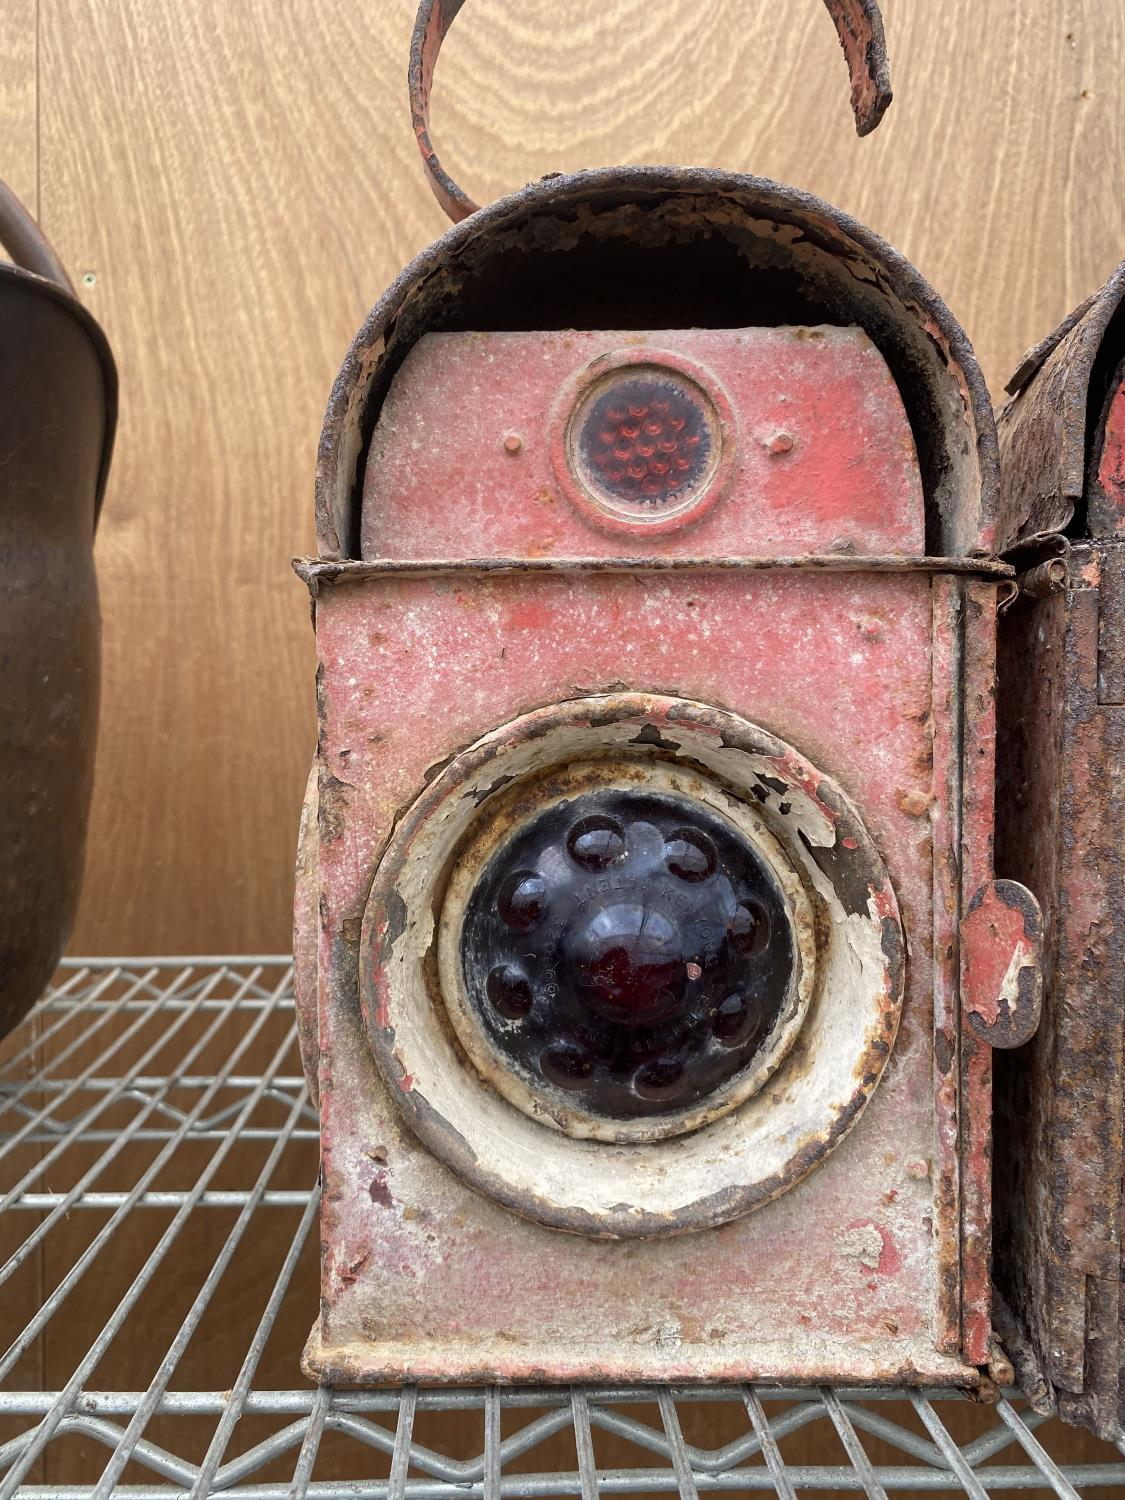 A PAIR OF VINTAGE ROAD LAMPS - Image 2 of 6